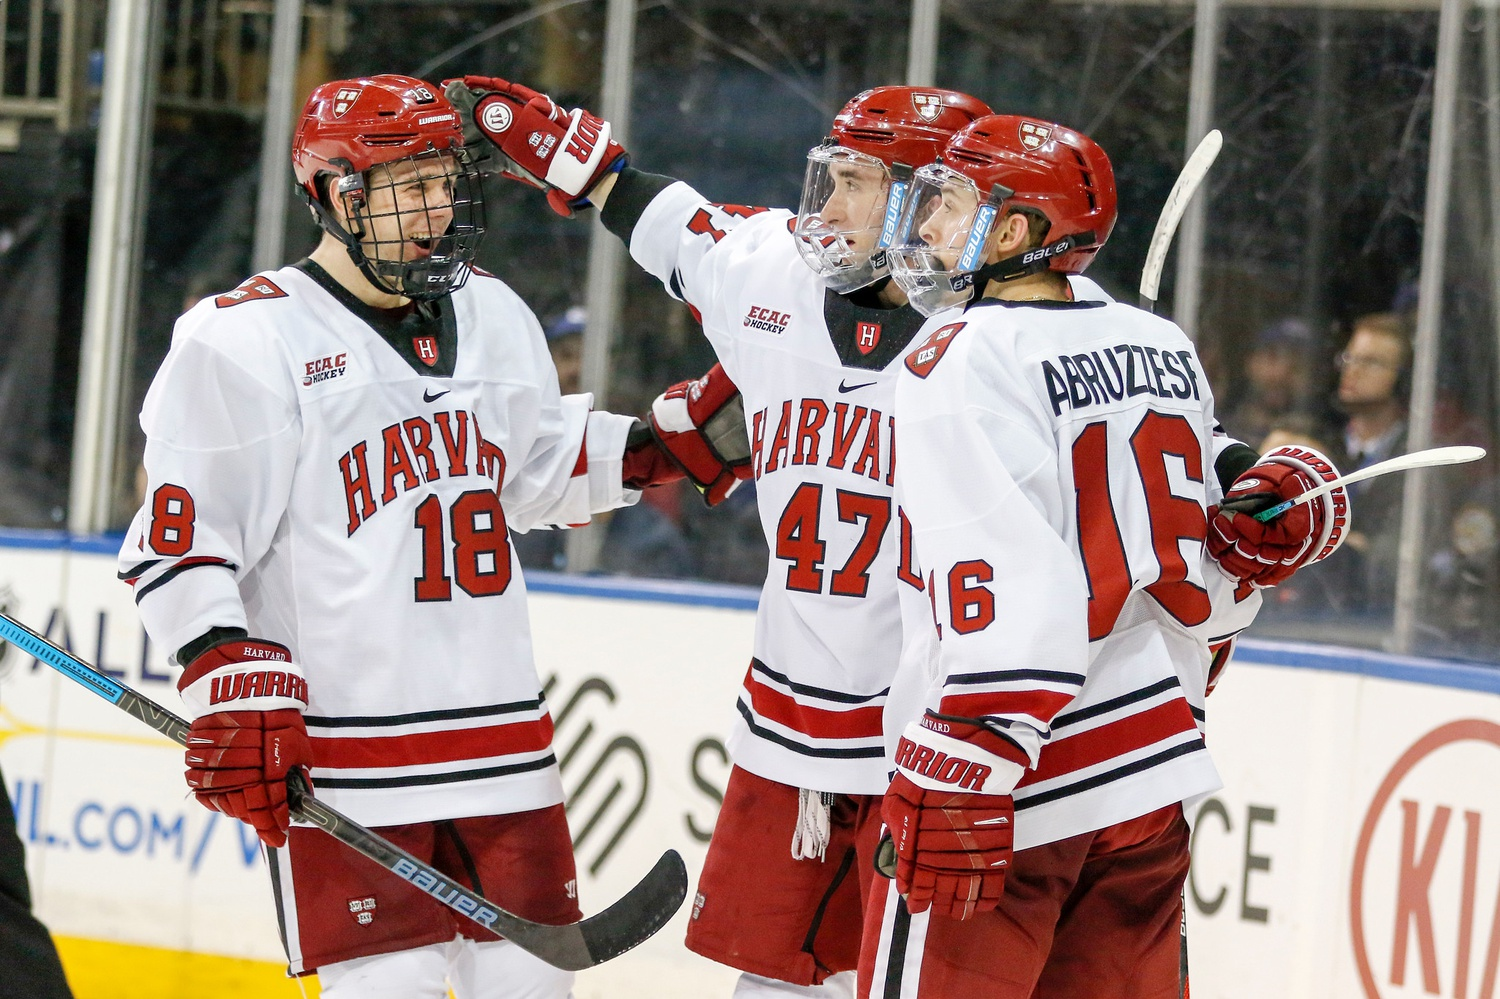 In the Crimson's prior matchups with Union and RPI this season, its top line has combined for 18 points.